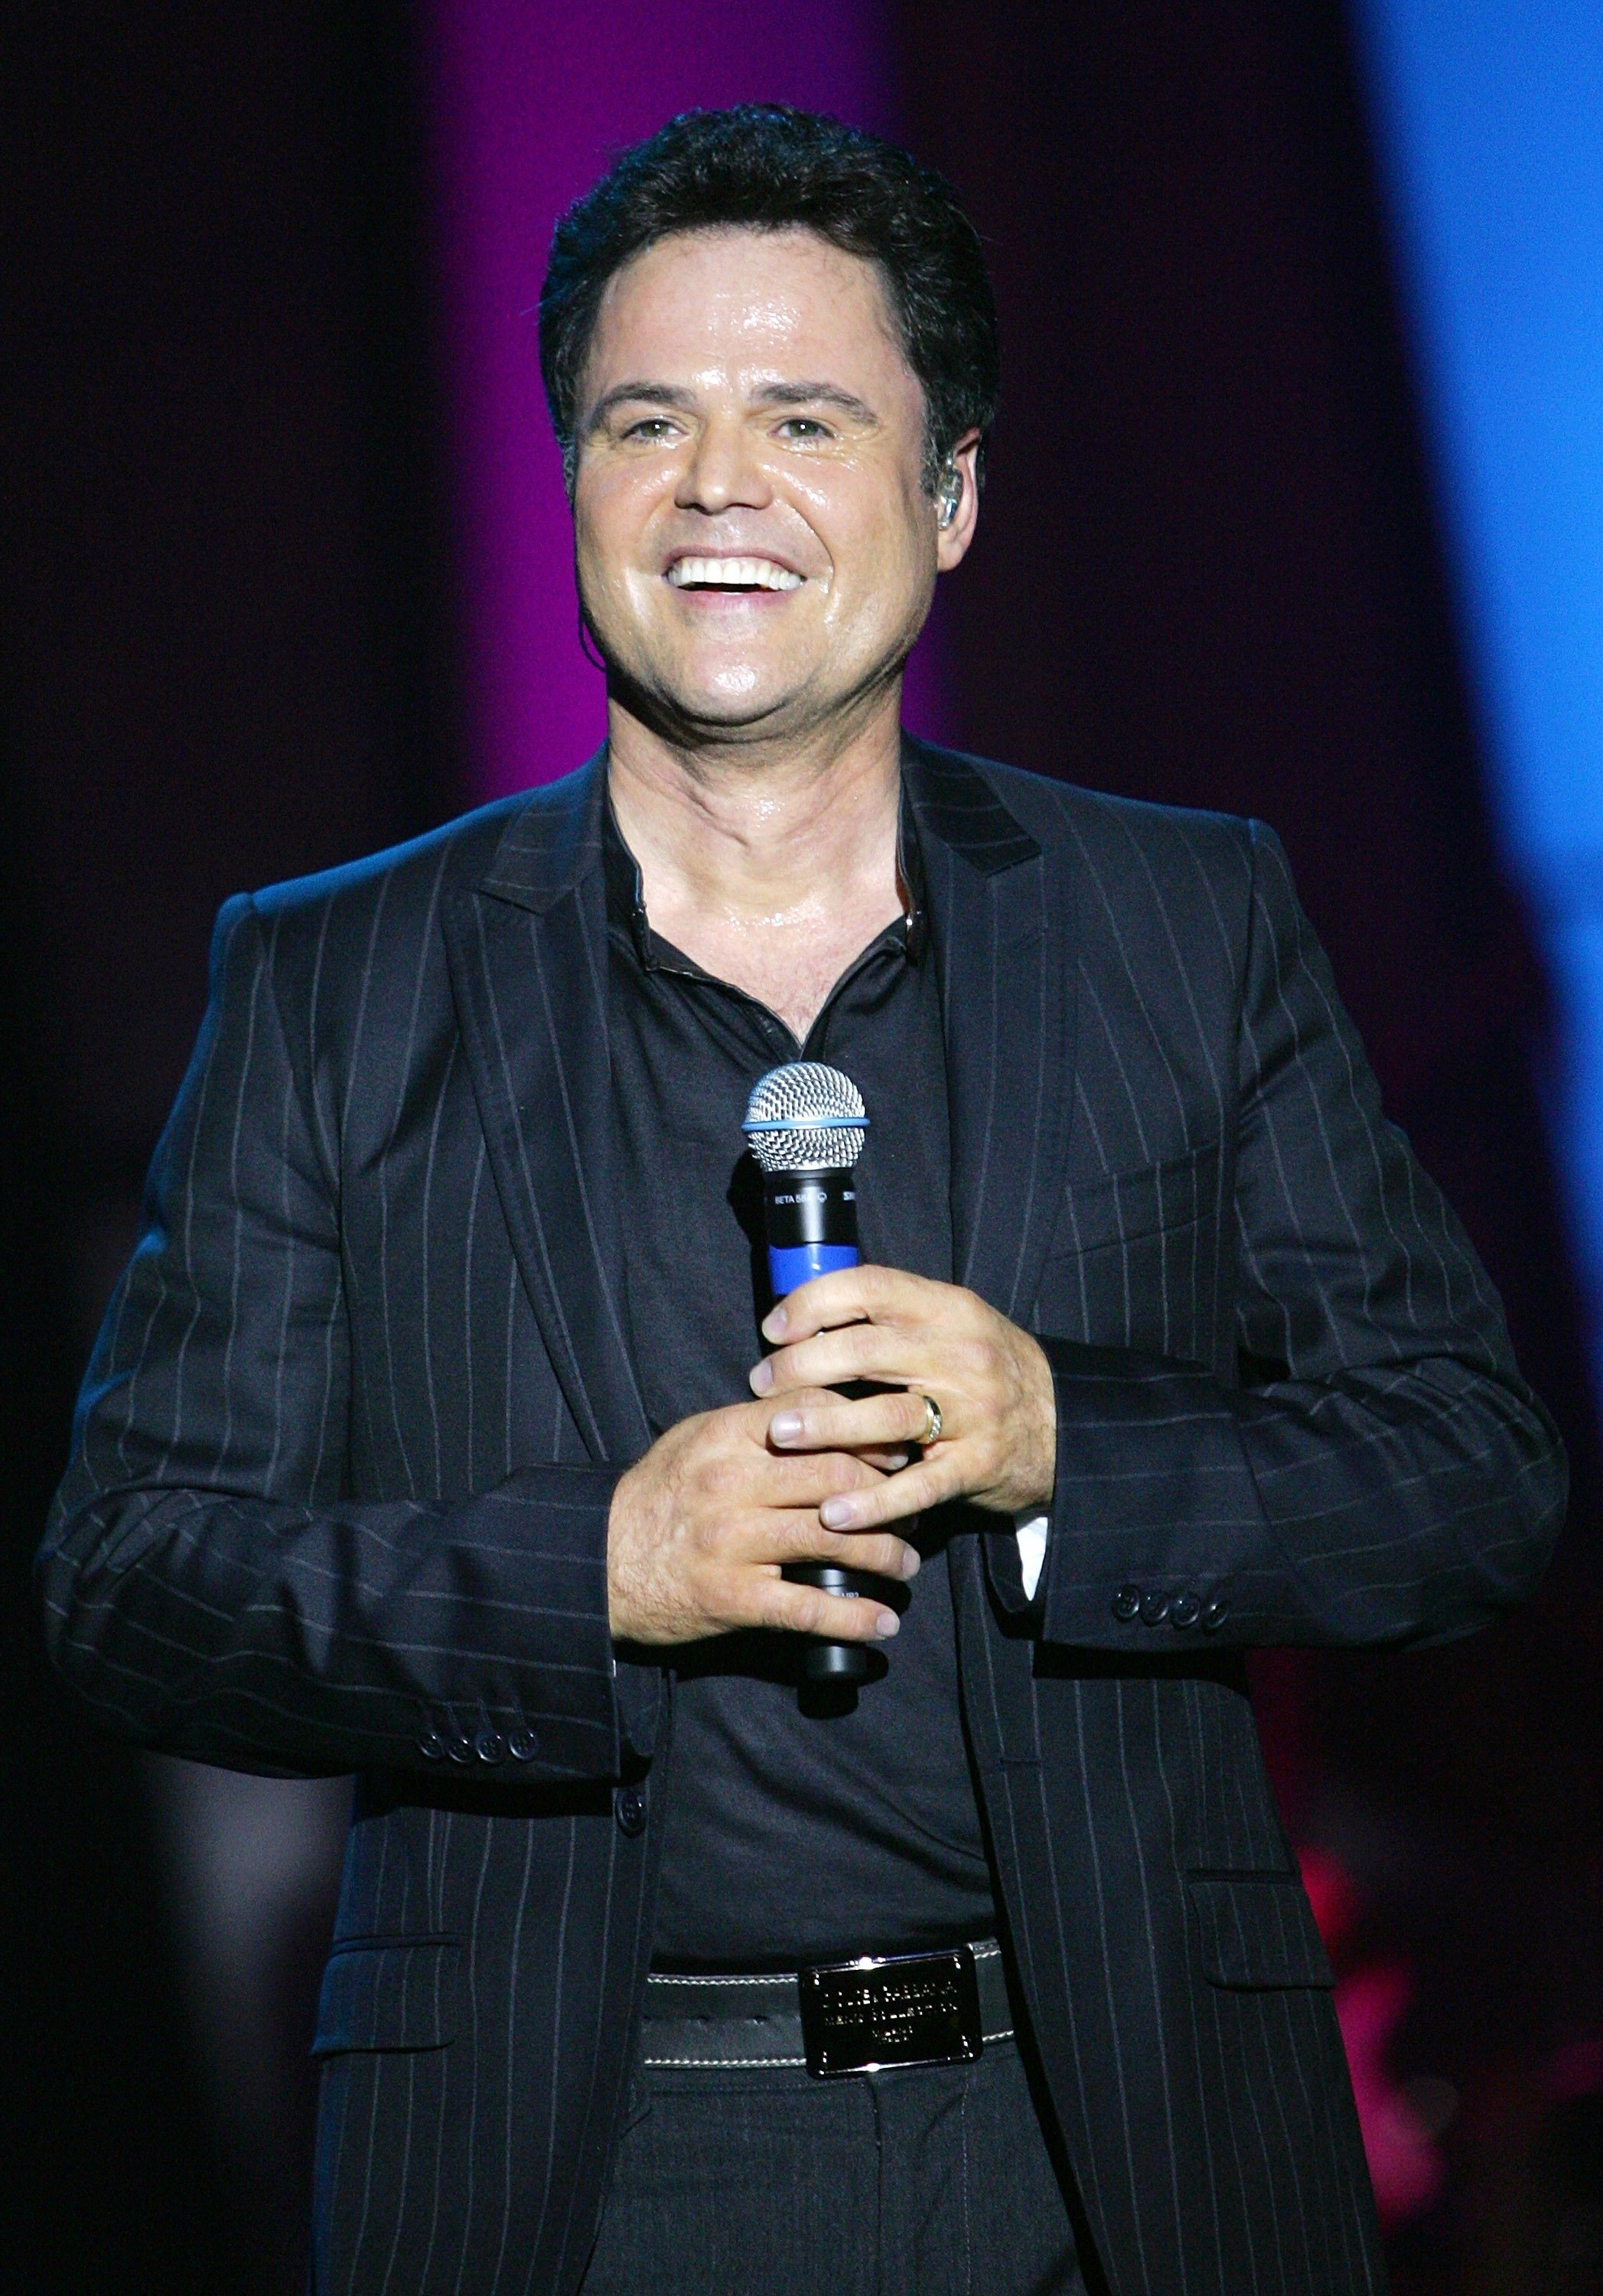 Donny Osmond at the Orleans Hotel & Casino August 14, 2007 in Las Vegas, Nevada | Photo: GettyImages